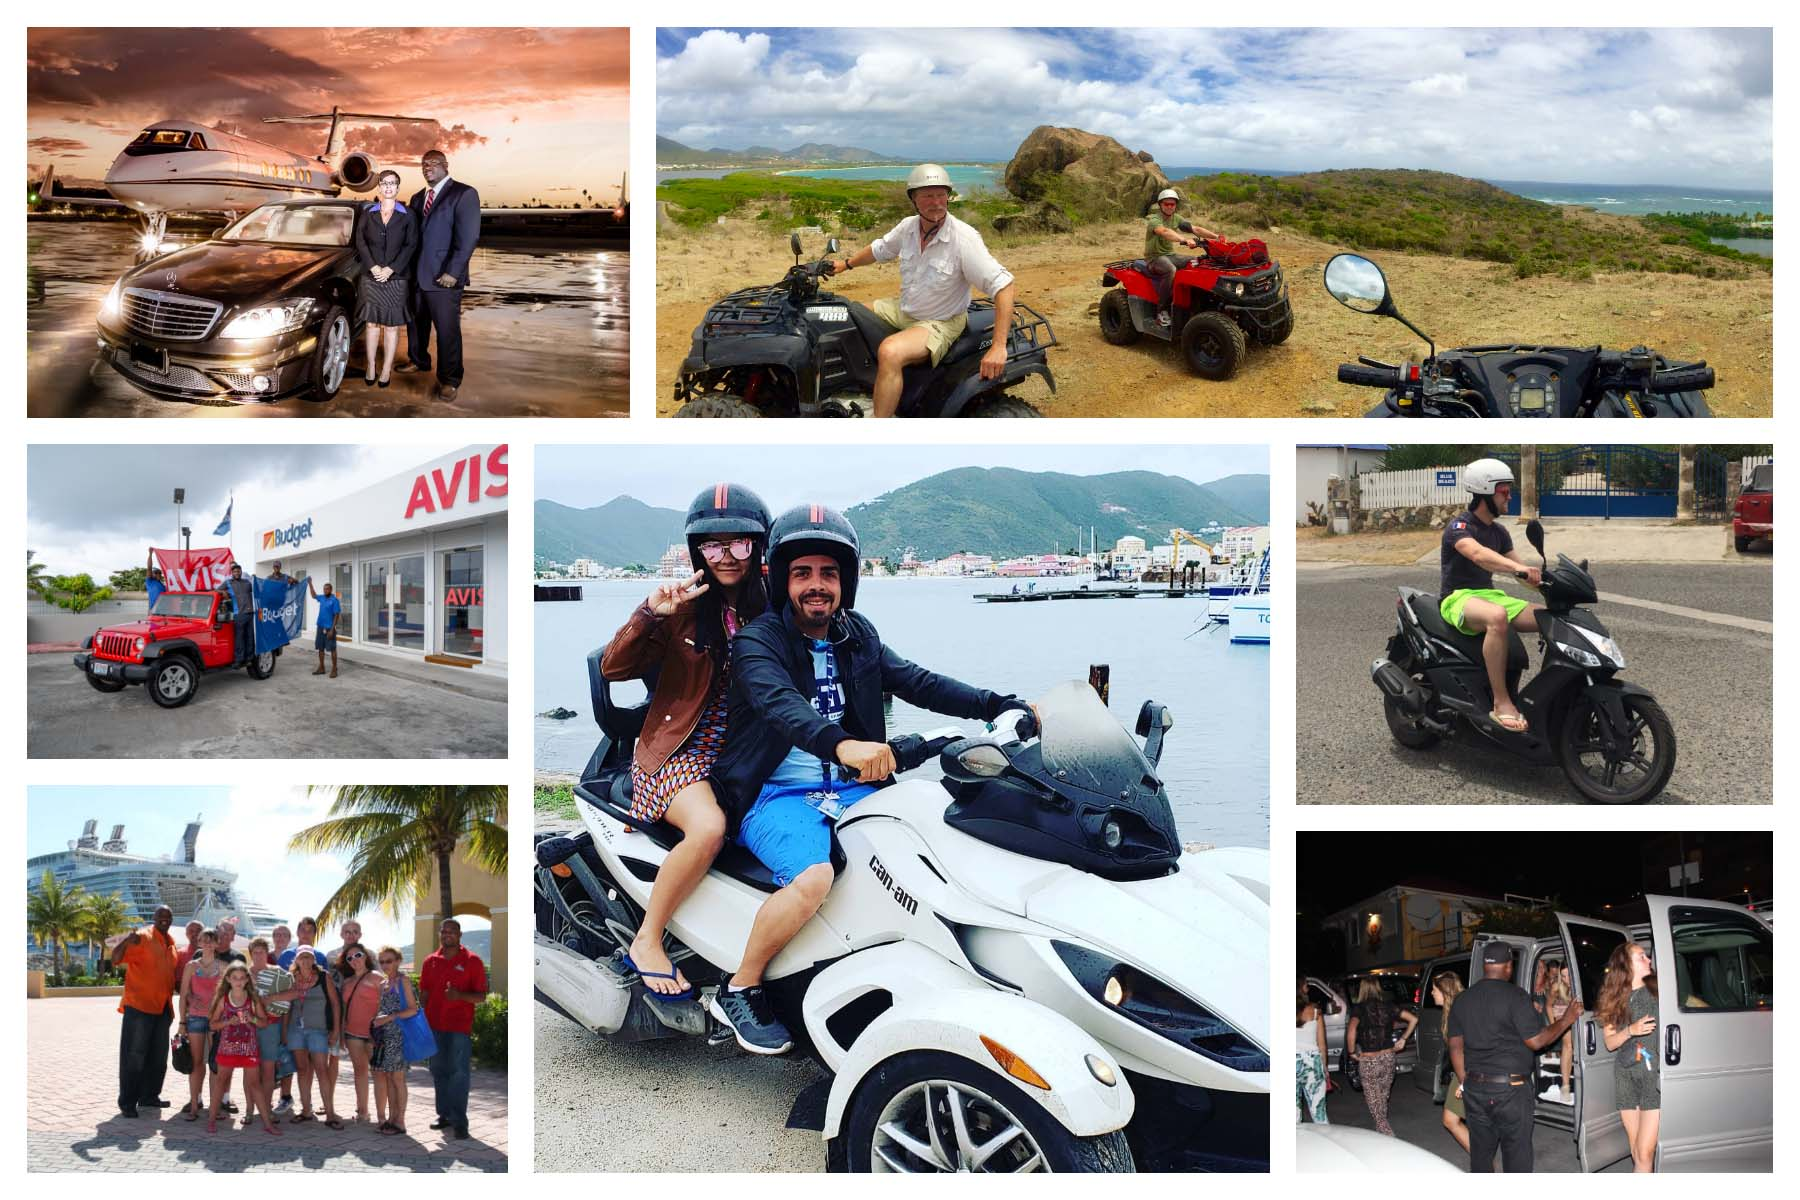 Transportation Sint Maarten, Taxi, Bus, Spyder, Trike, Harley, ATV, Car Rental, Scooter, Private Chauffeur, Events, Island Tours.